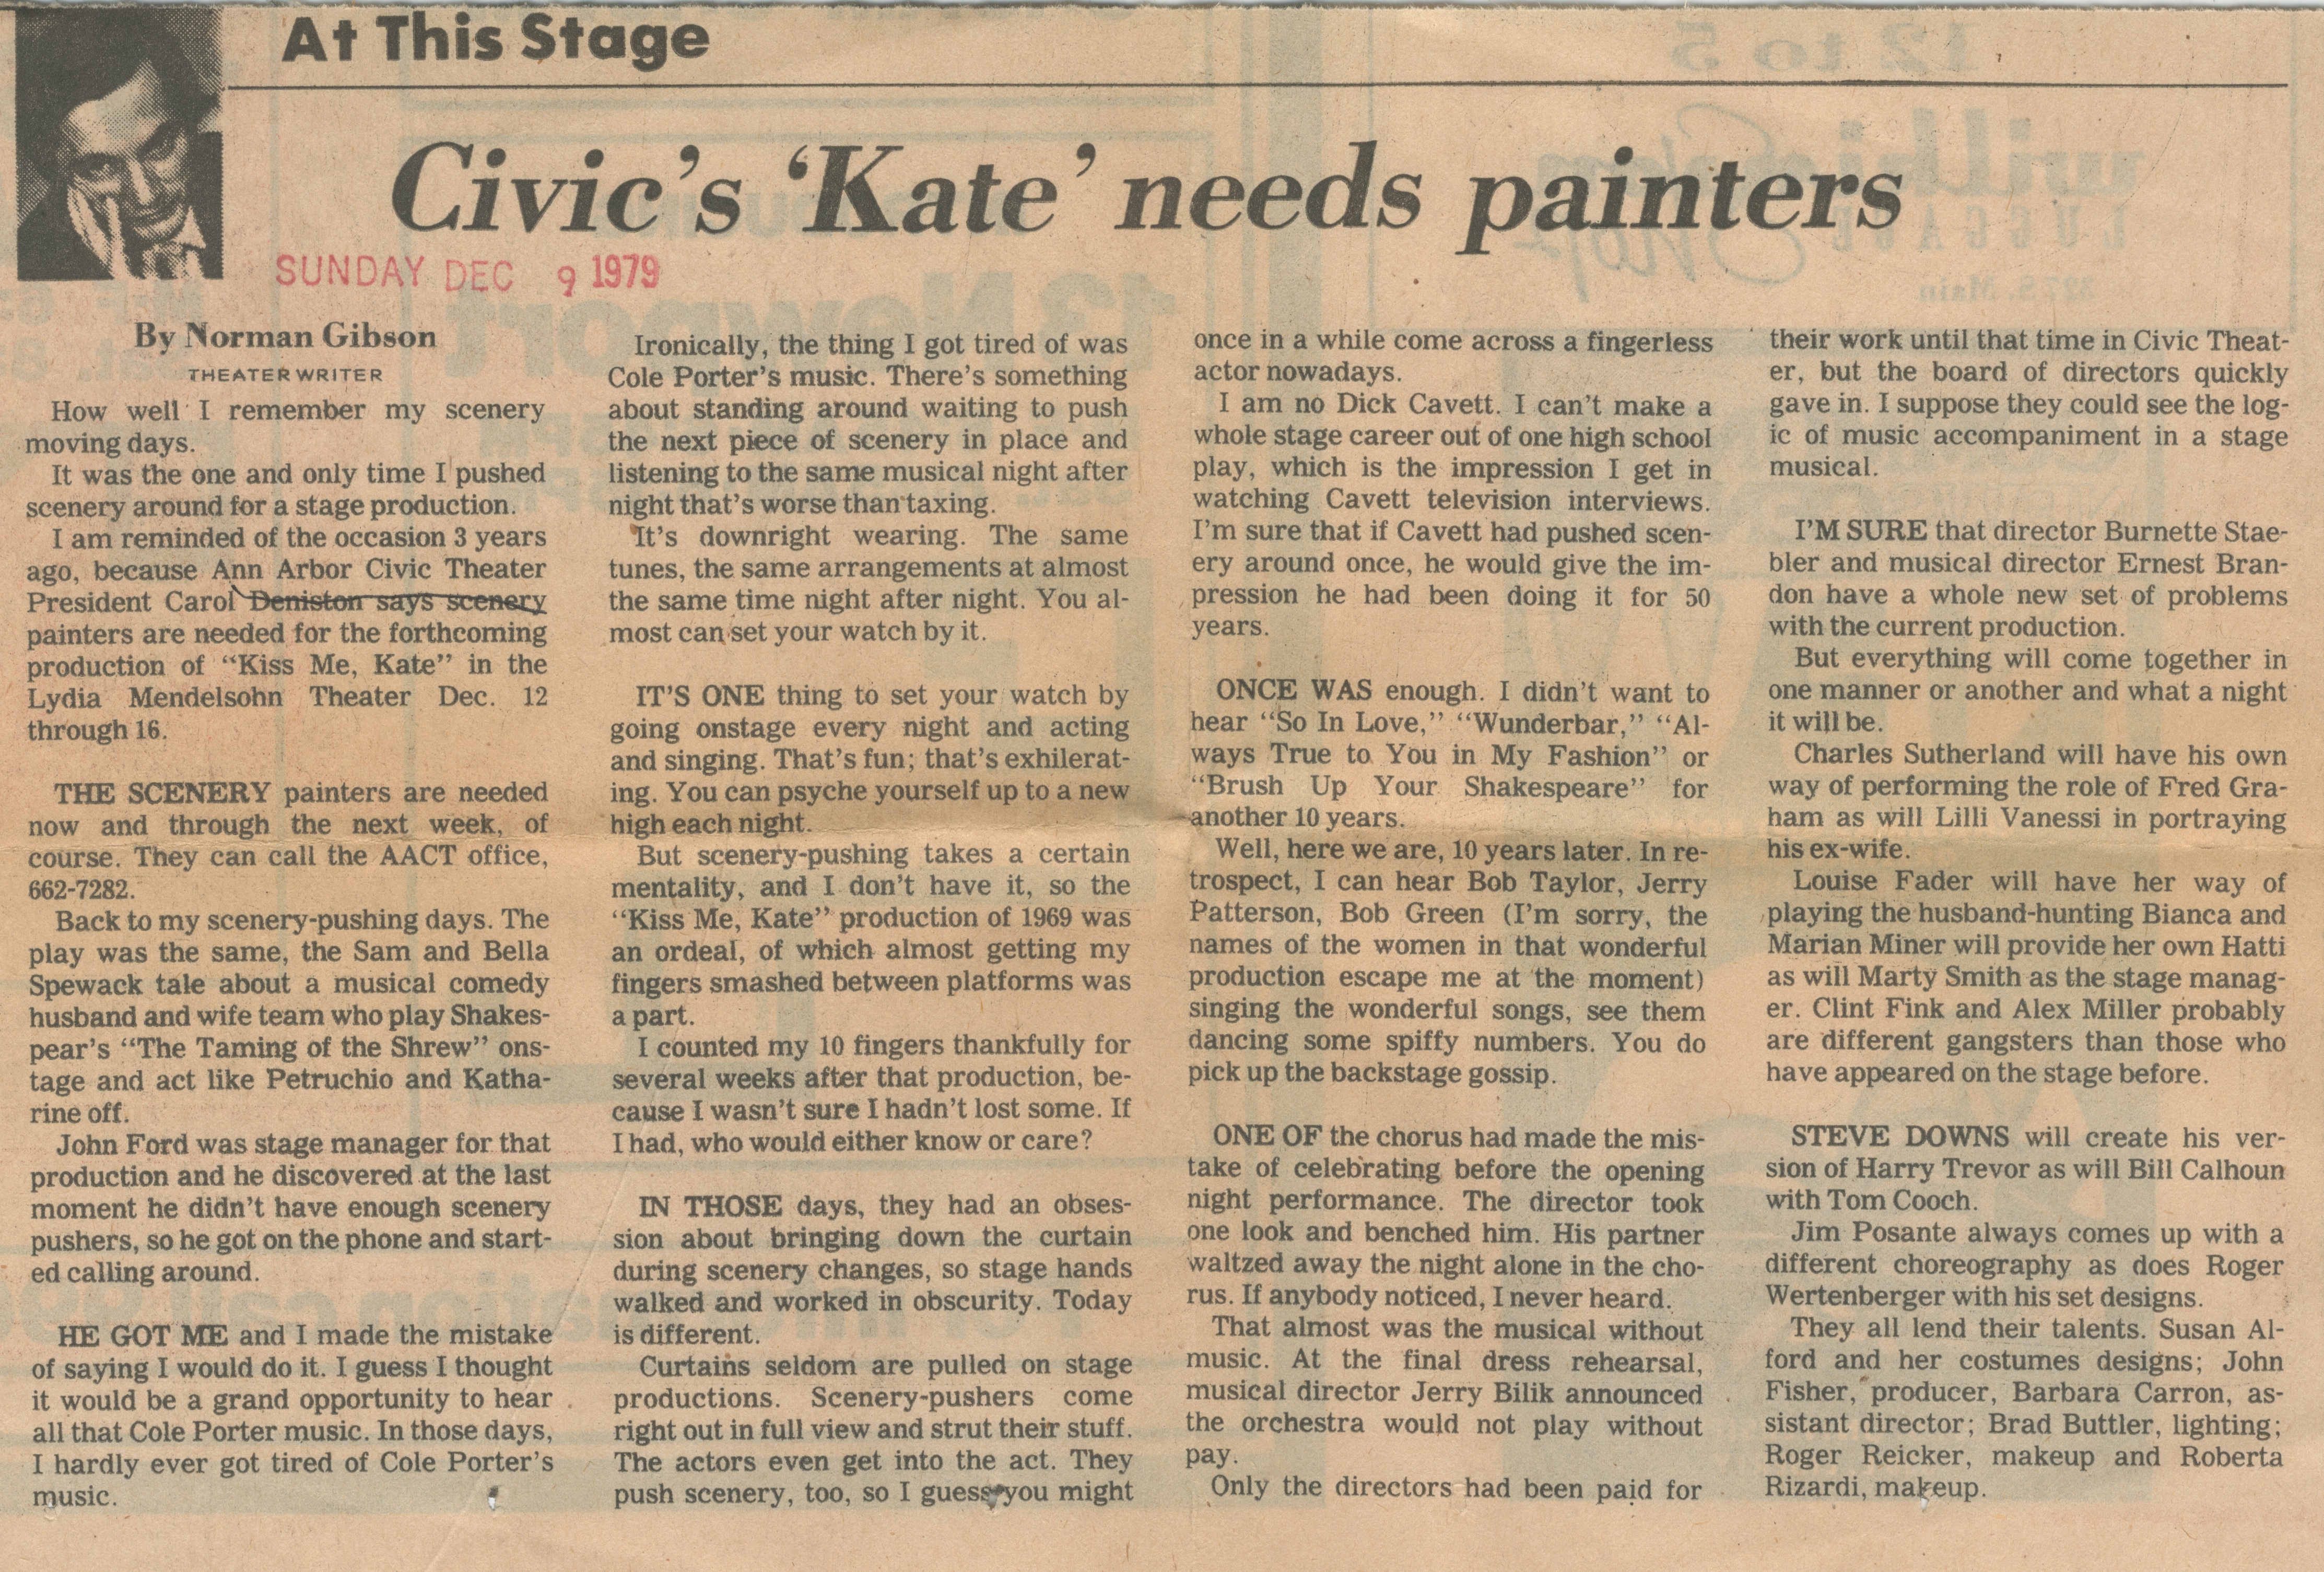 Civic's 'Kate' Needs Painters image